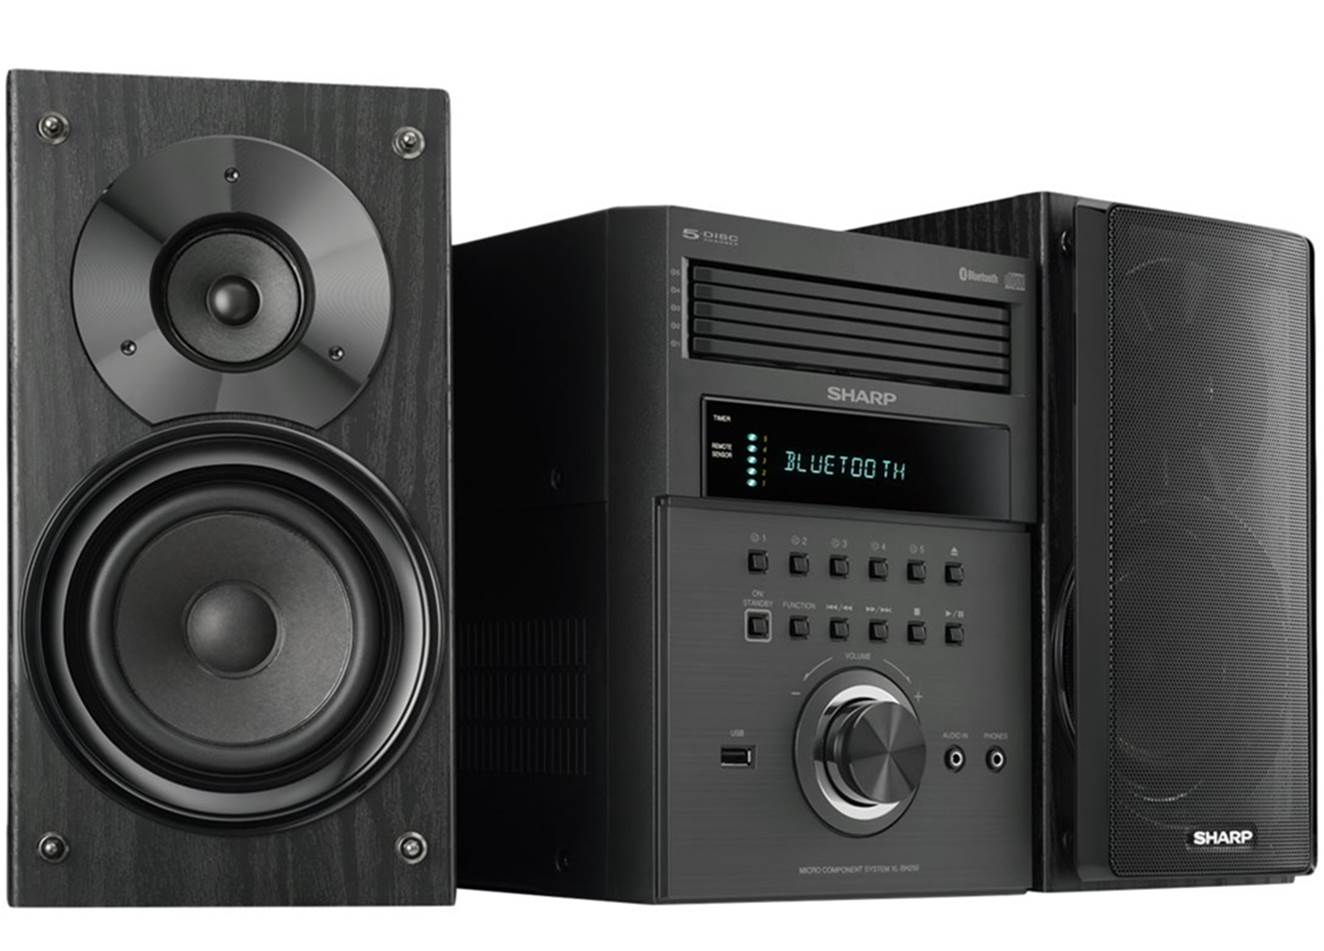 Best Home Sound System For Bass